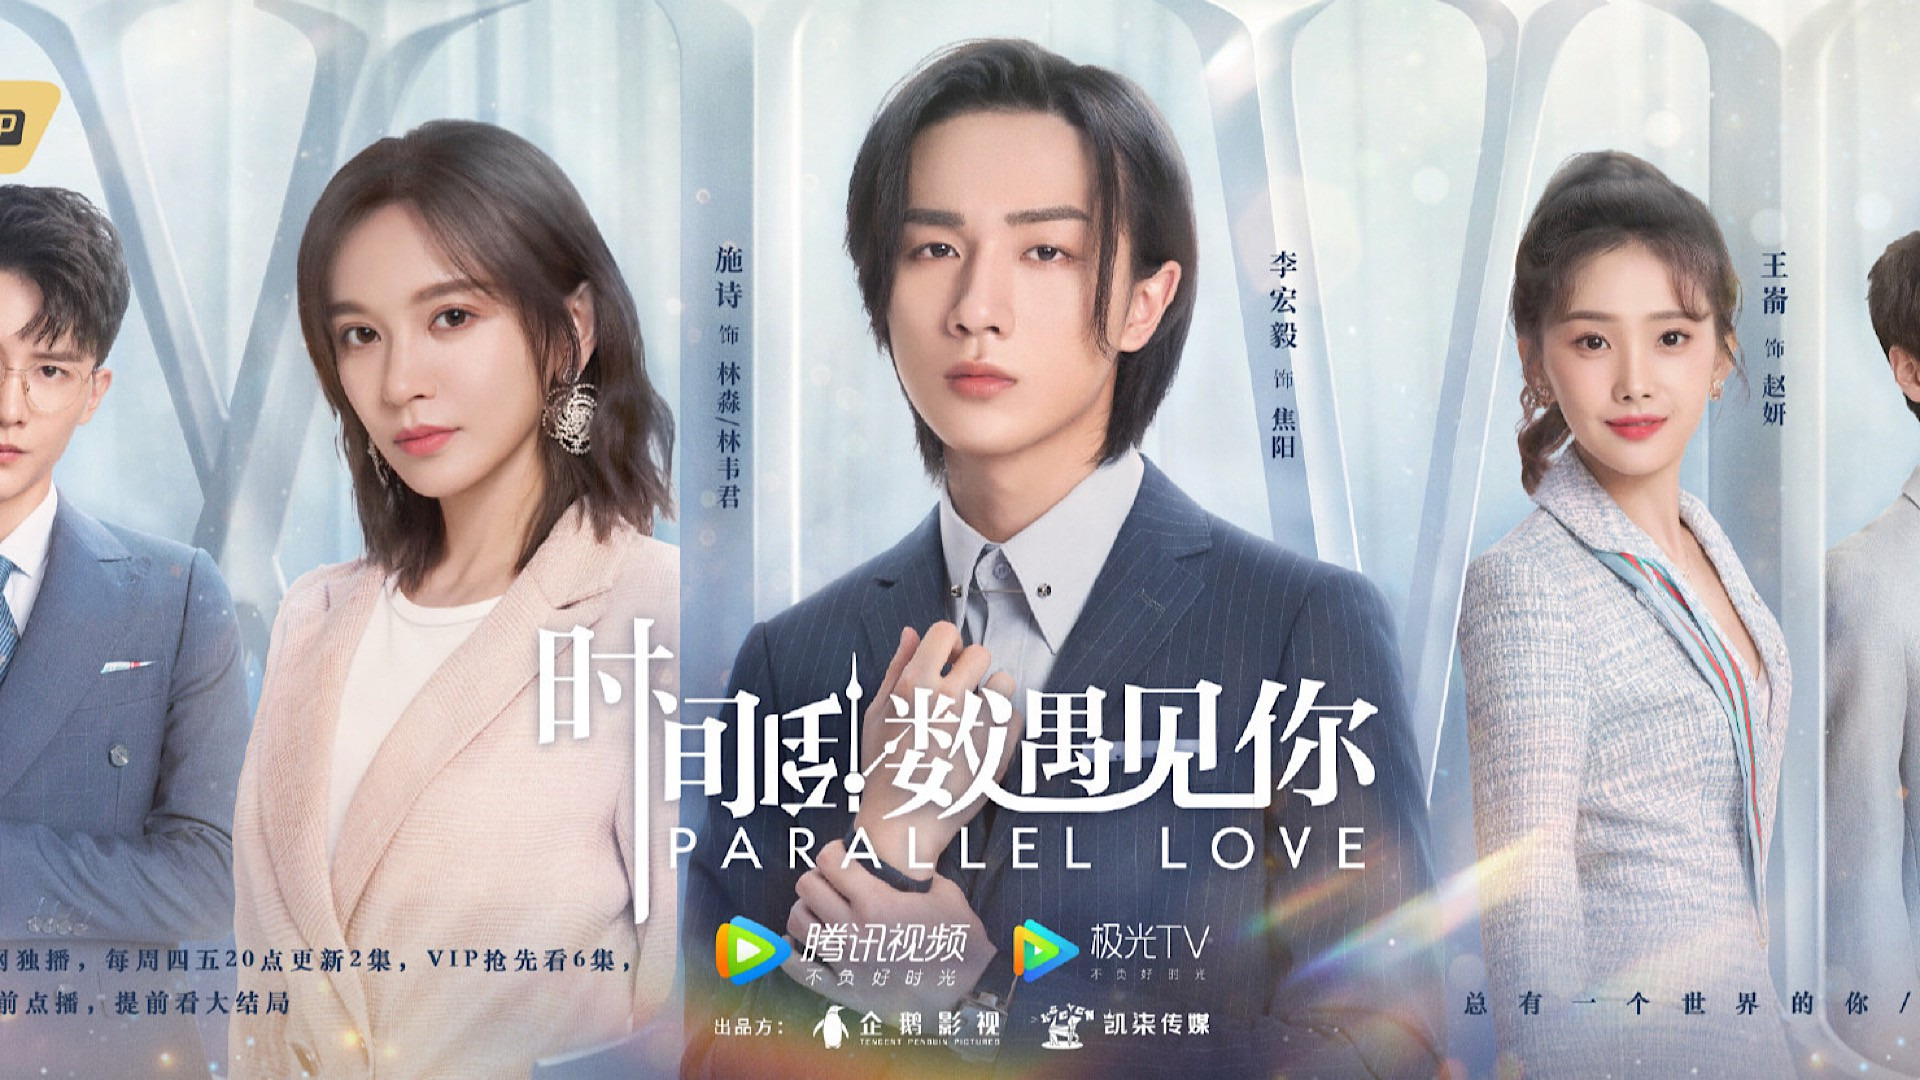 Show Parallel Love